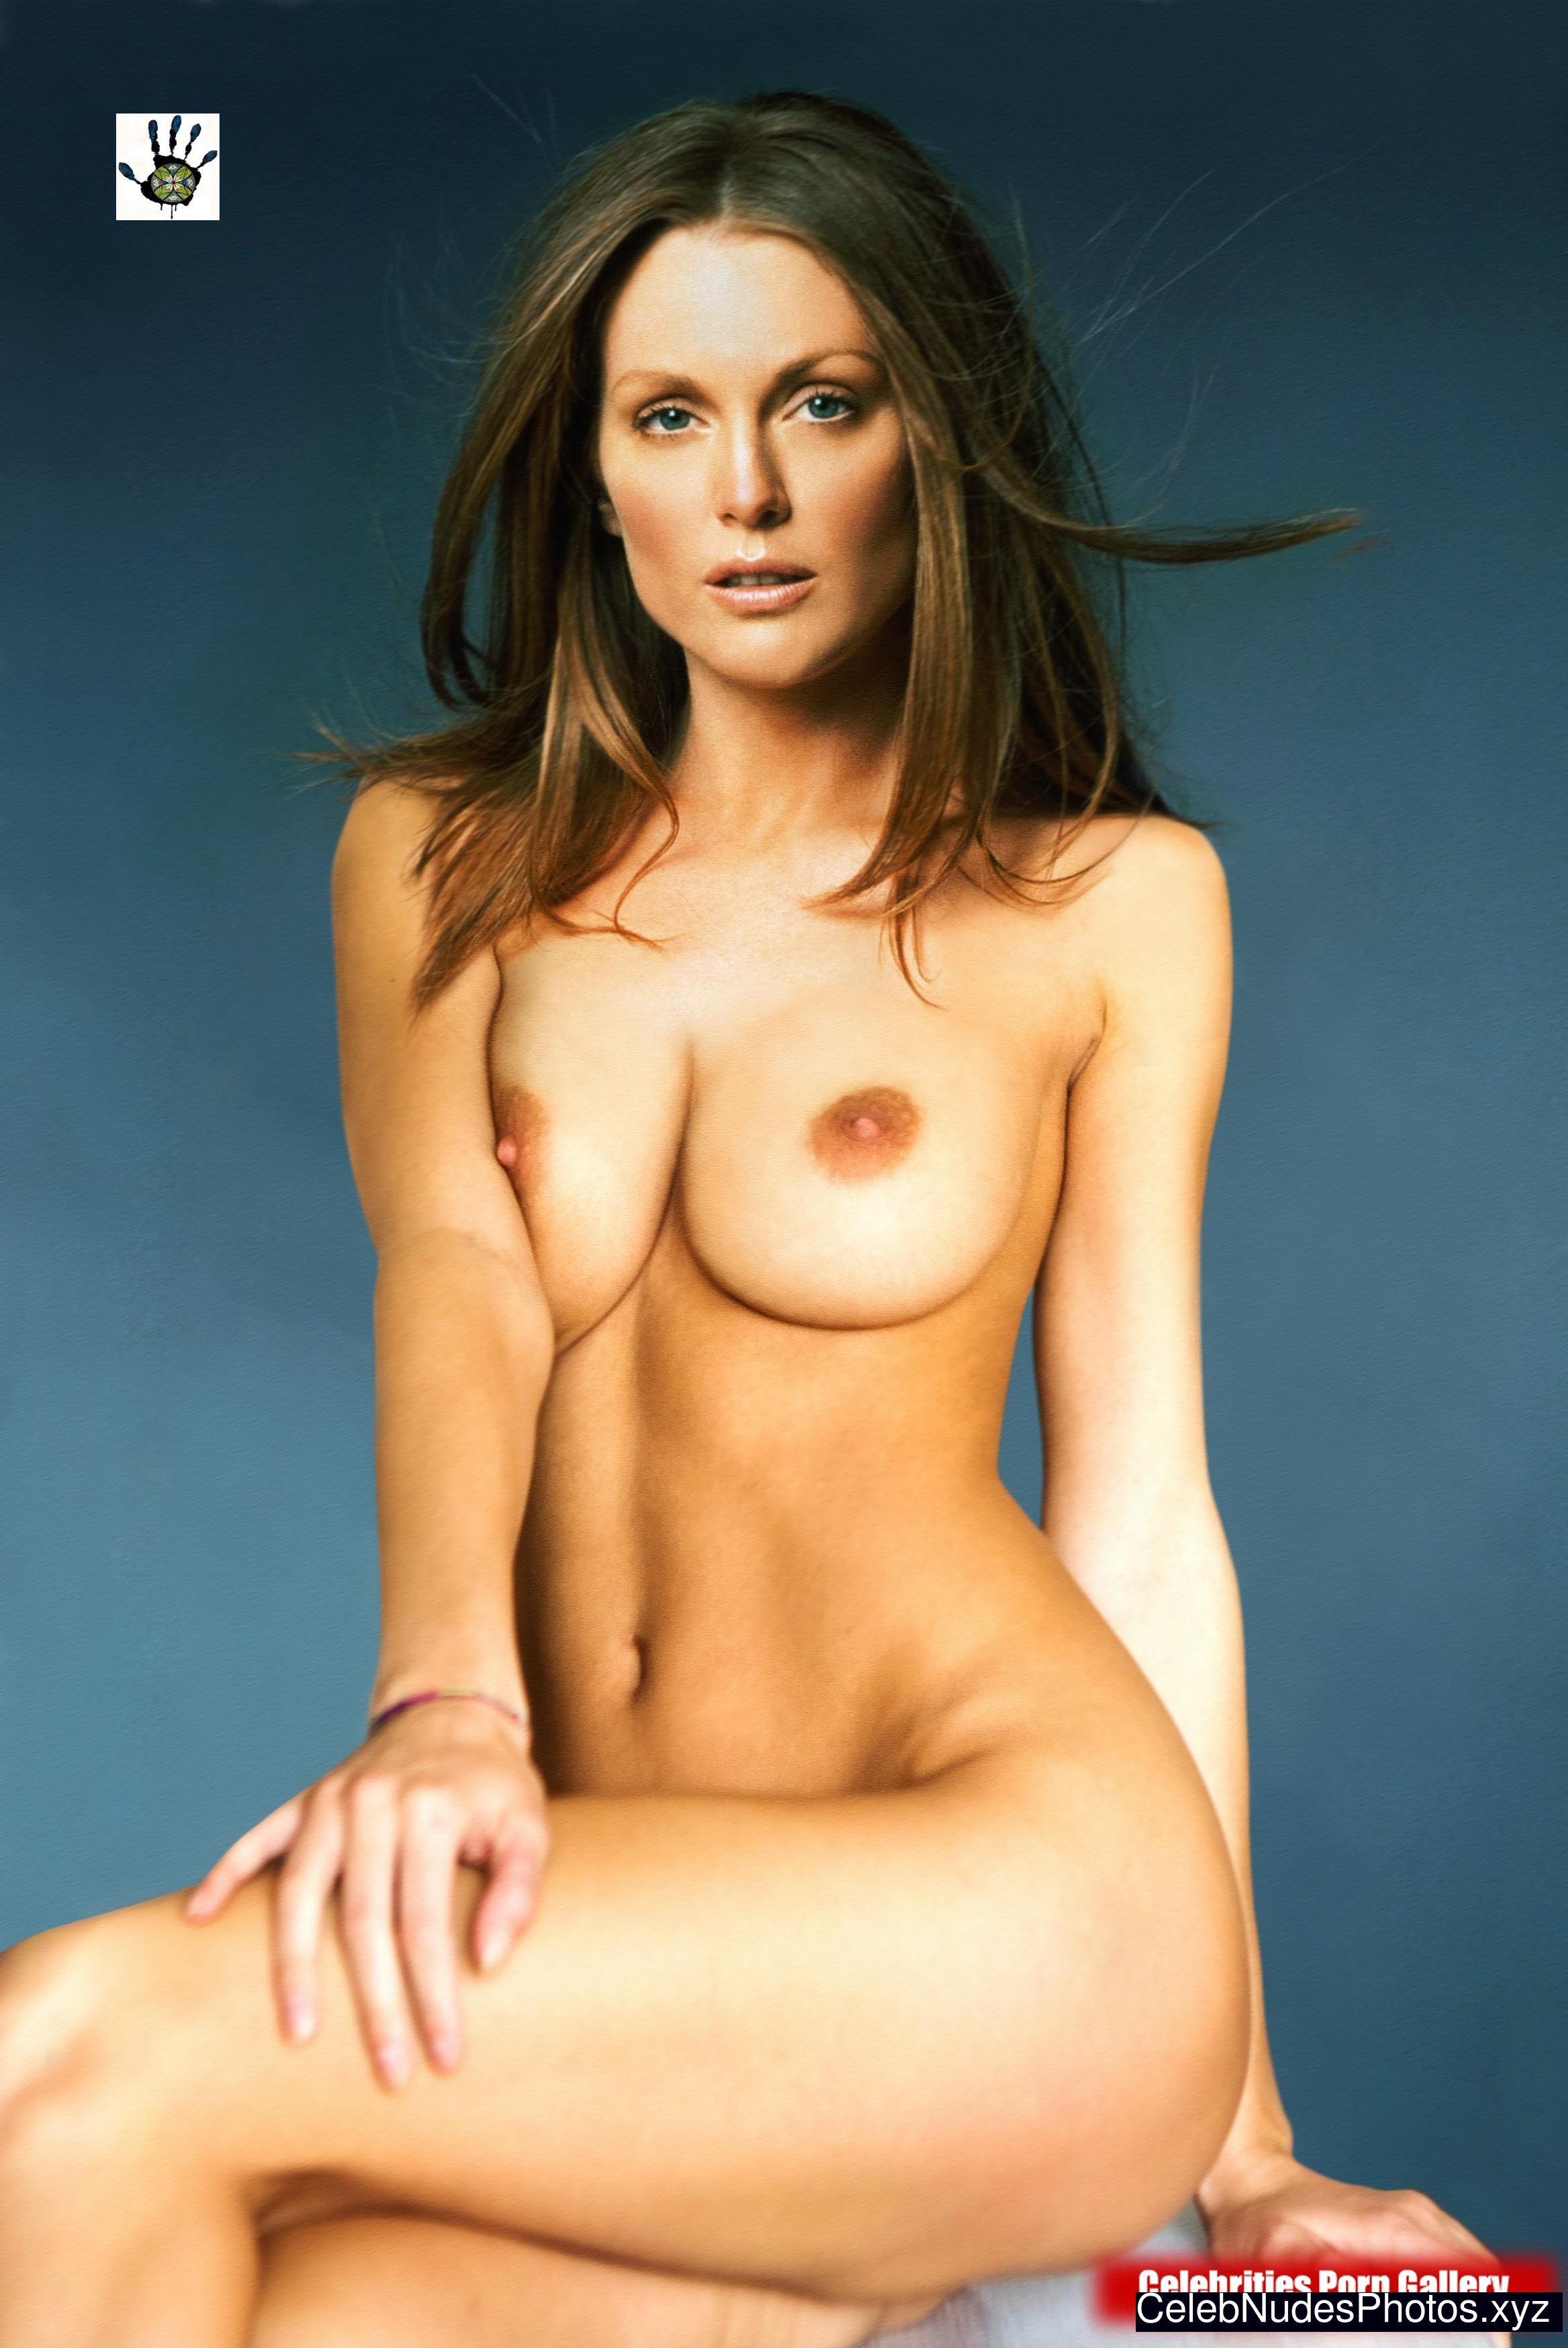 michelle moore nude pictures